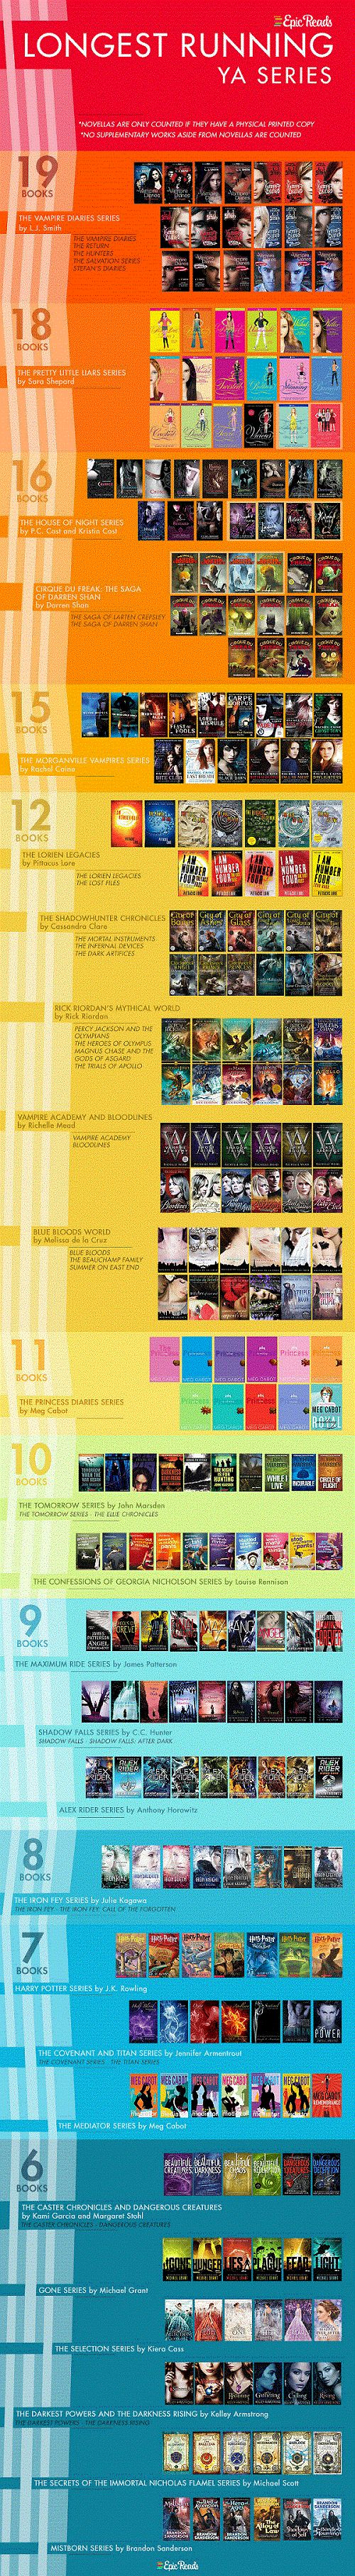 Long YA Series Infographic (GalleyCat)